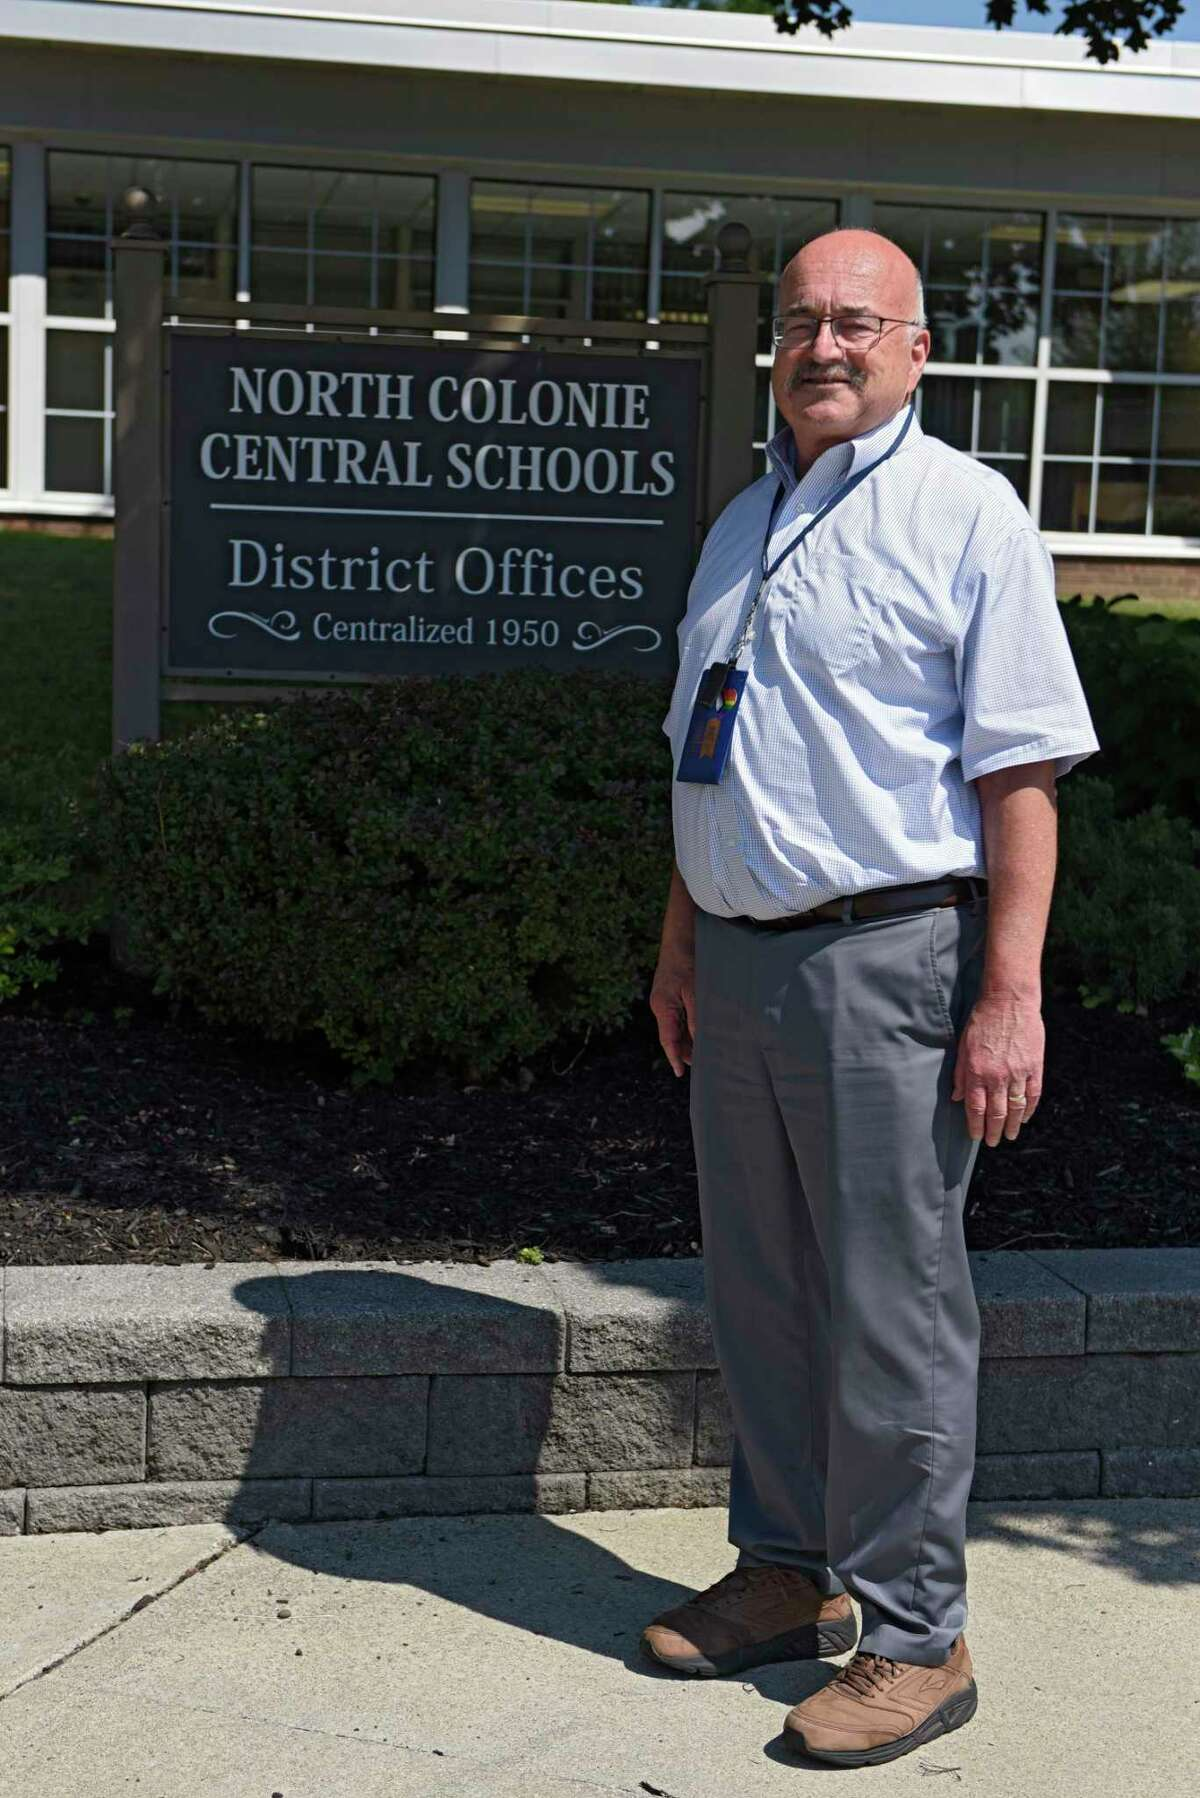 Dr. Joseph Corr stands outside the North Colonie District Office on Monday, Aug. 24, 2020 in Latham, N.Y. (Lori Van Buren/Times Union)